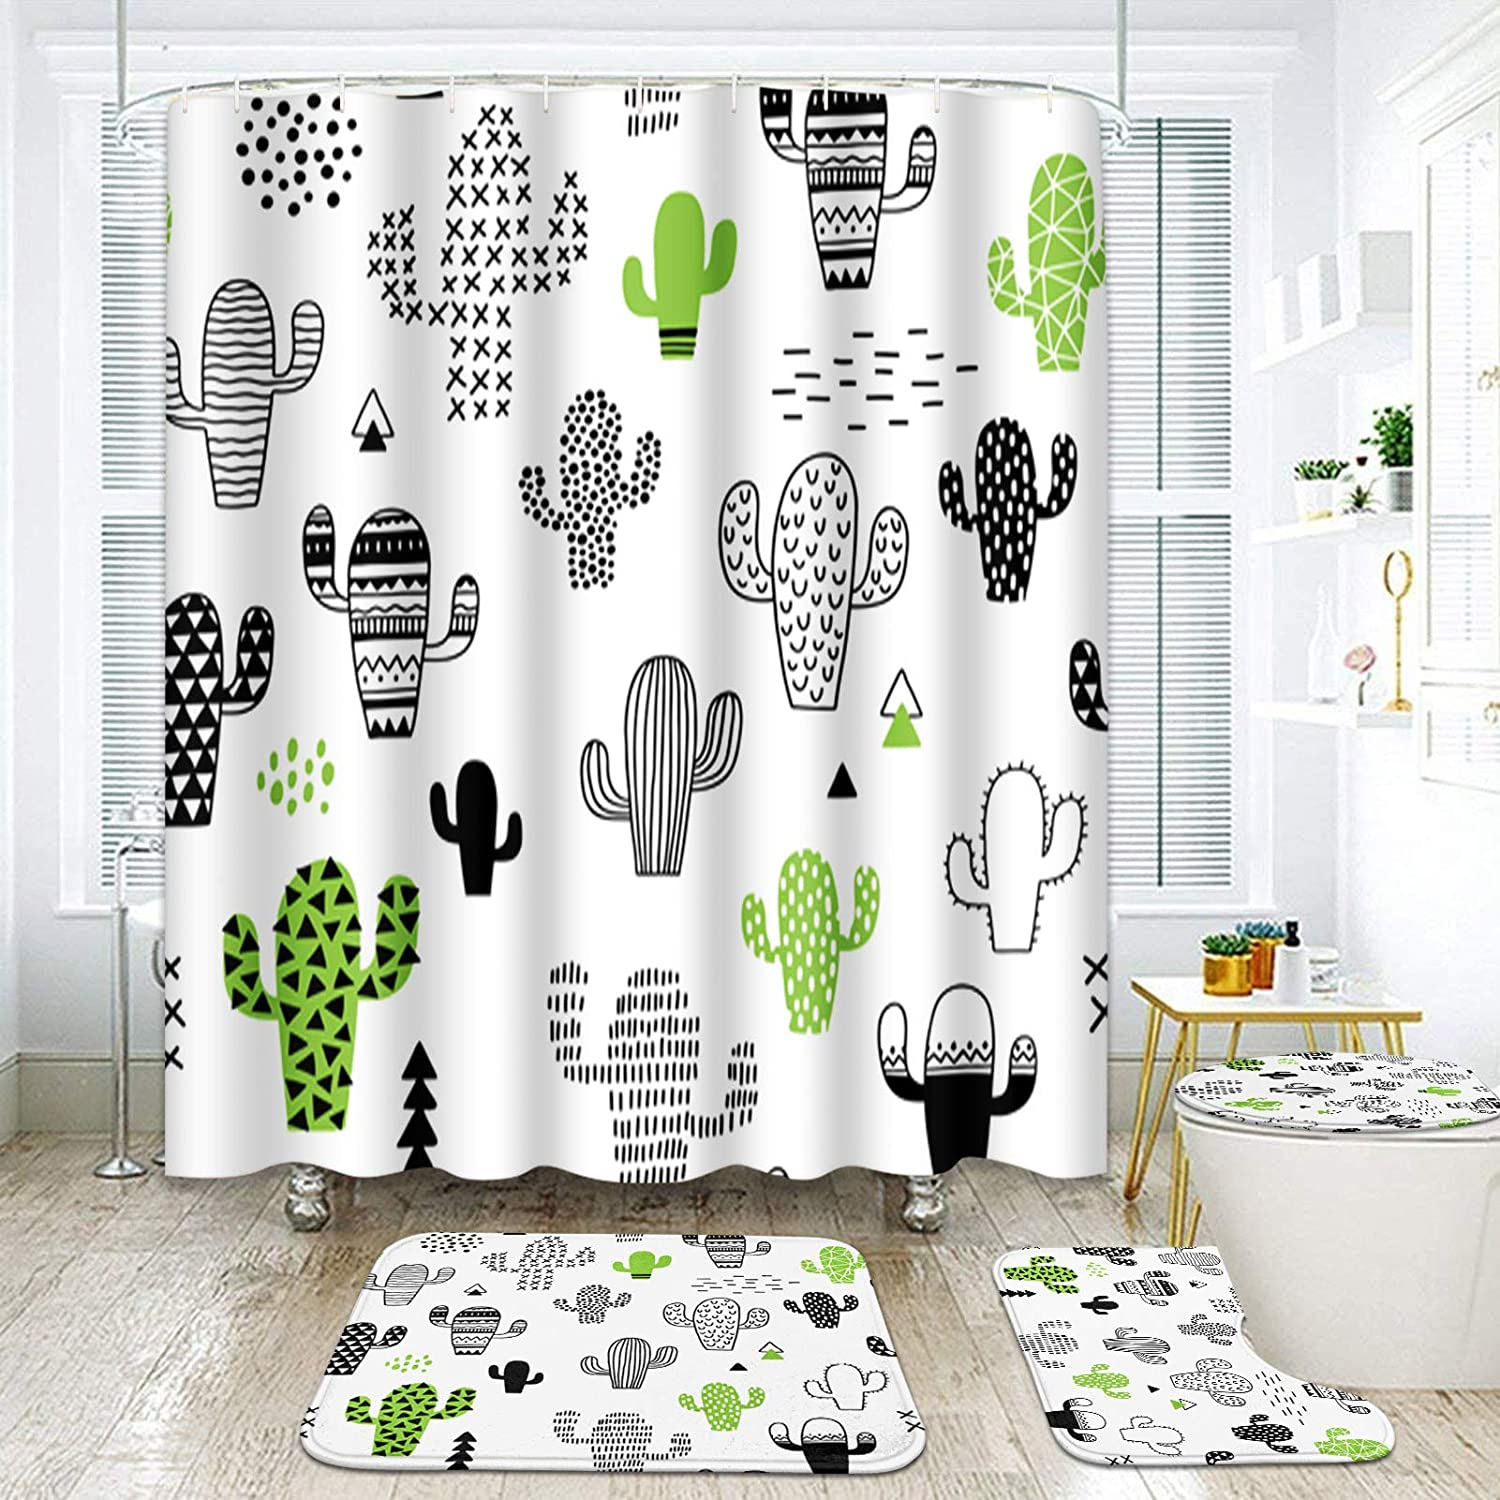 ArtSocket 4 Pcs Shower Curtain Set Cute Green Cactus Desert Summer Kids Hipster houseplant Abstract Vintage with Non-Slip Rugs Toilet Lid Cover and Bath Mat Bathroom Decor Set 72